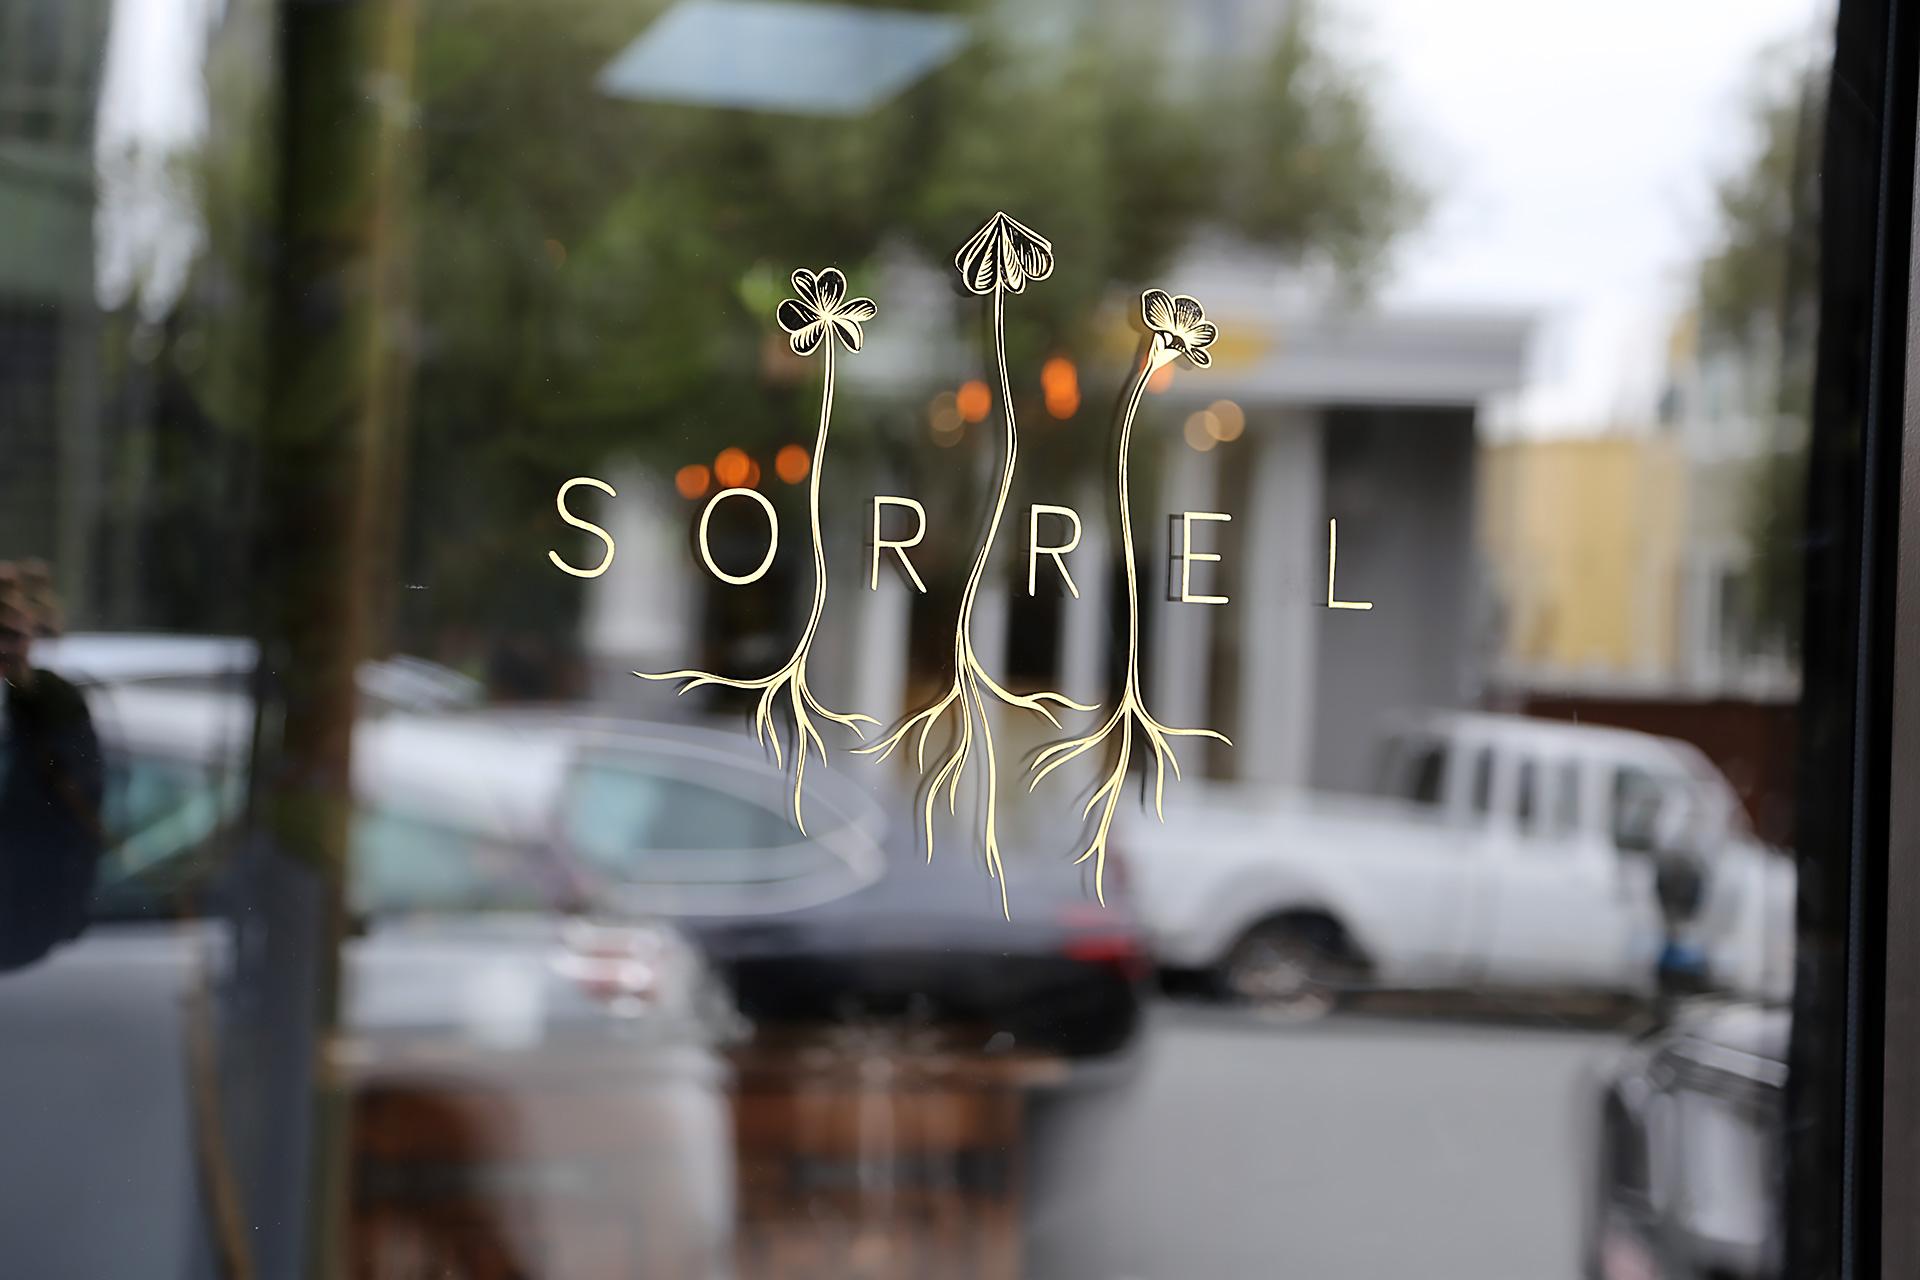 Sorrel logo on front door